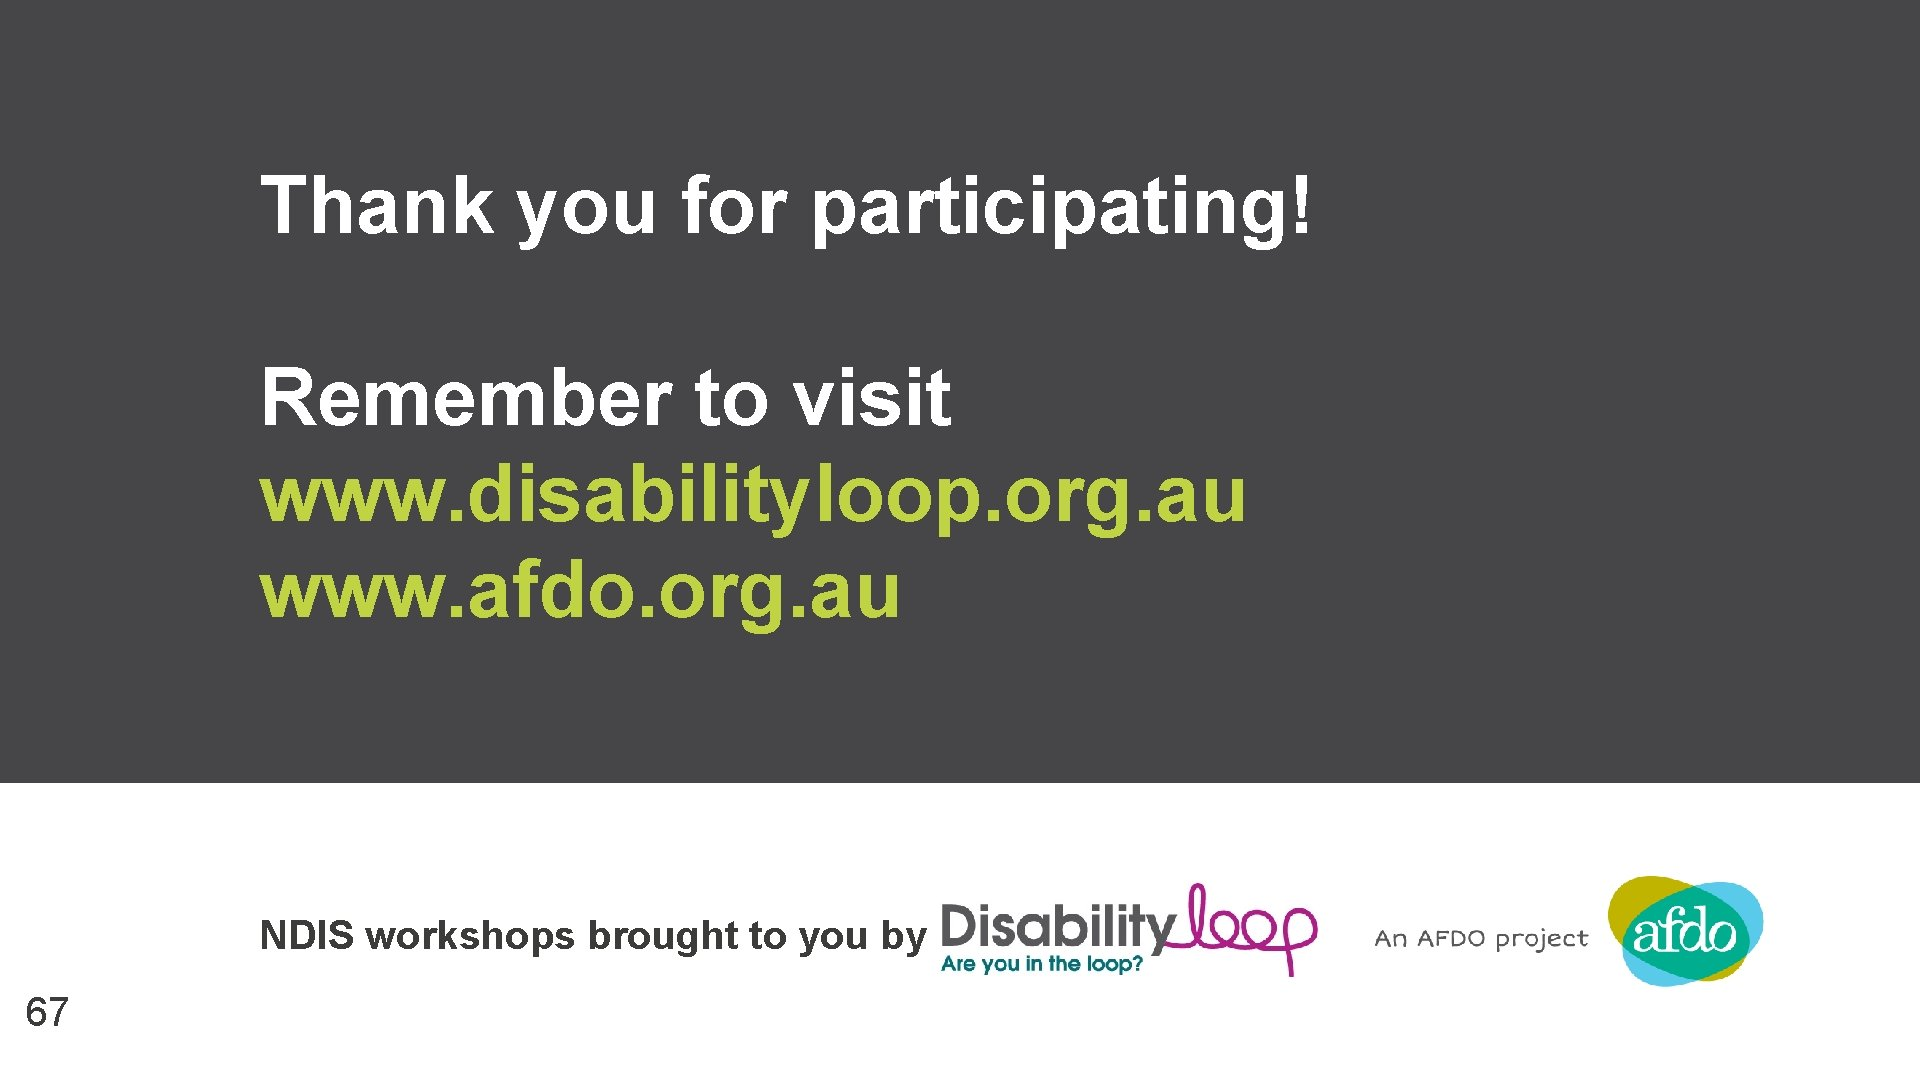 Thank you for participating! Remember to visit www. disabilityloop. org. au www. afdo. org.